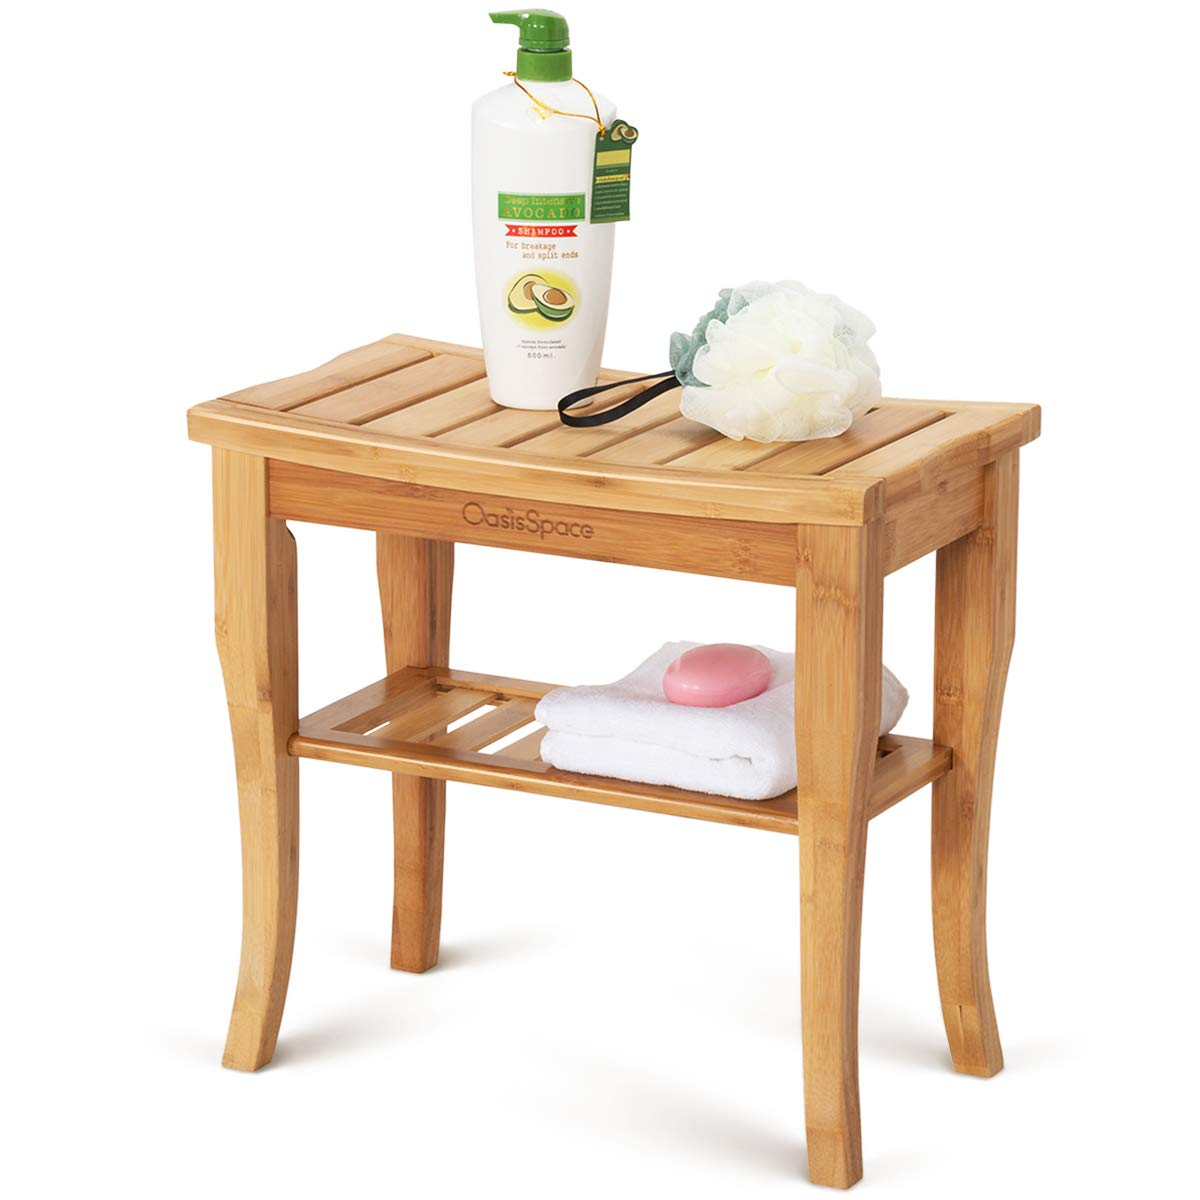 "OasisSpace Bamboo Shower Bench, 19"" Waterproof Shower Chair with Storage Shelf, Wood Spa Bath Organizer Seat Stool, Perfect for Indoor or Outdoor"